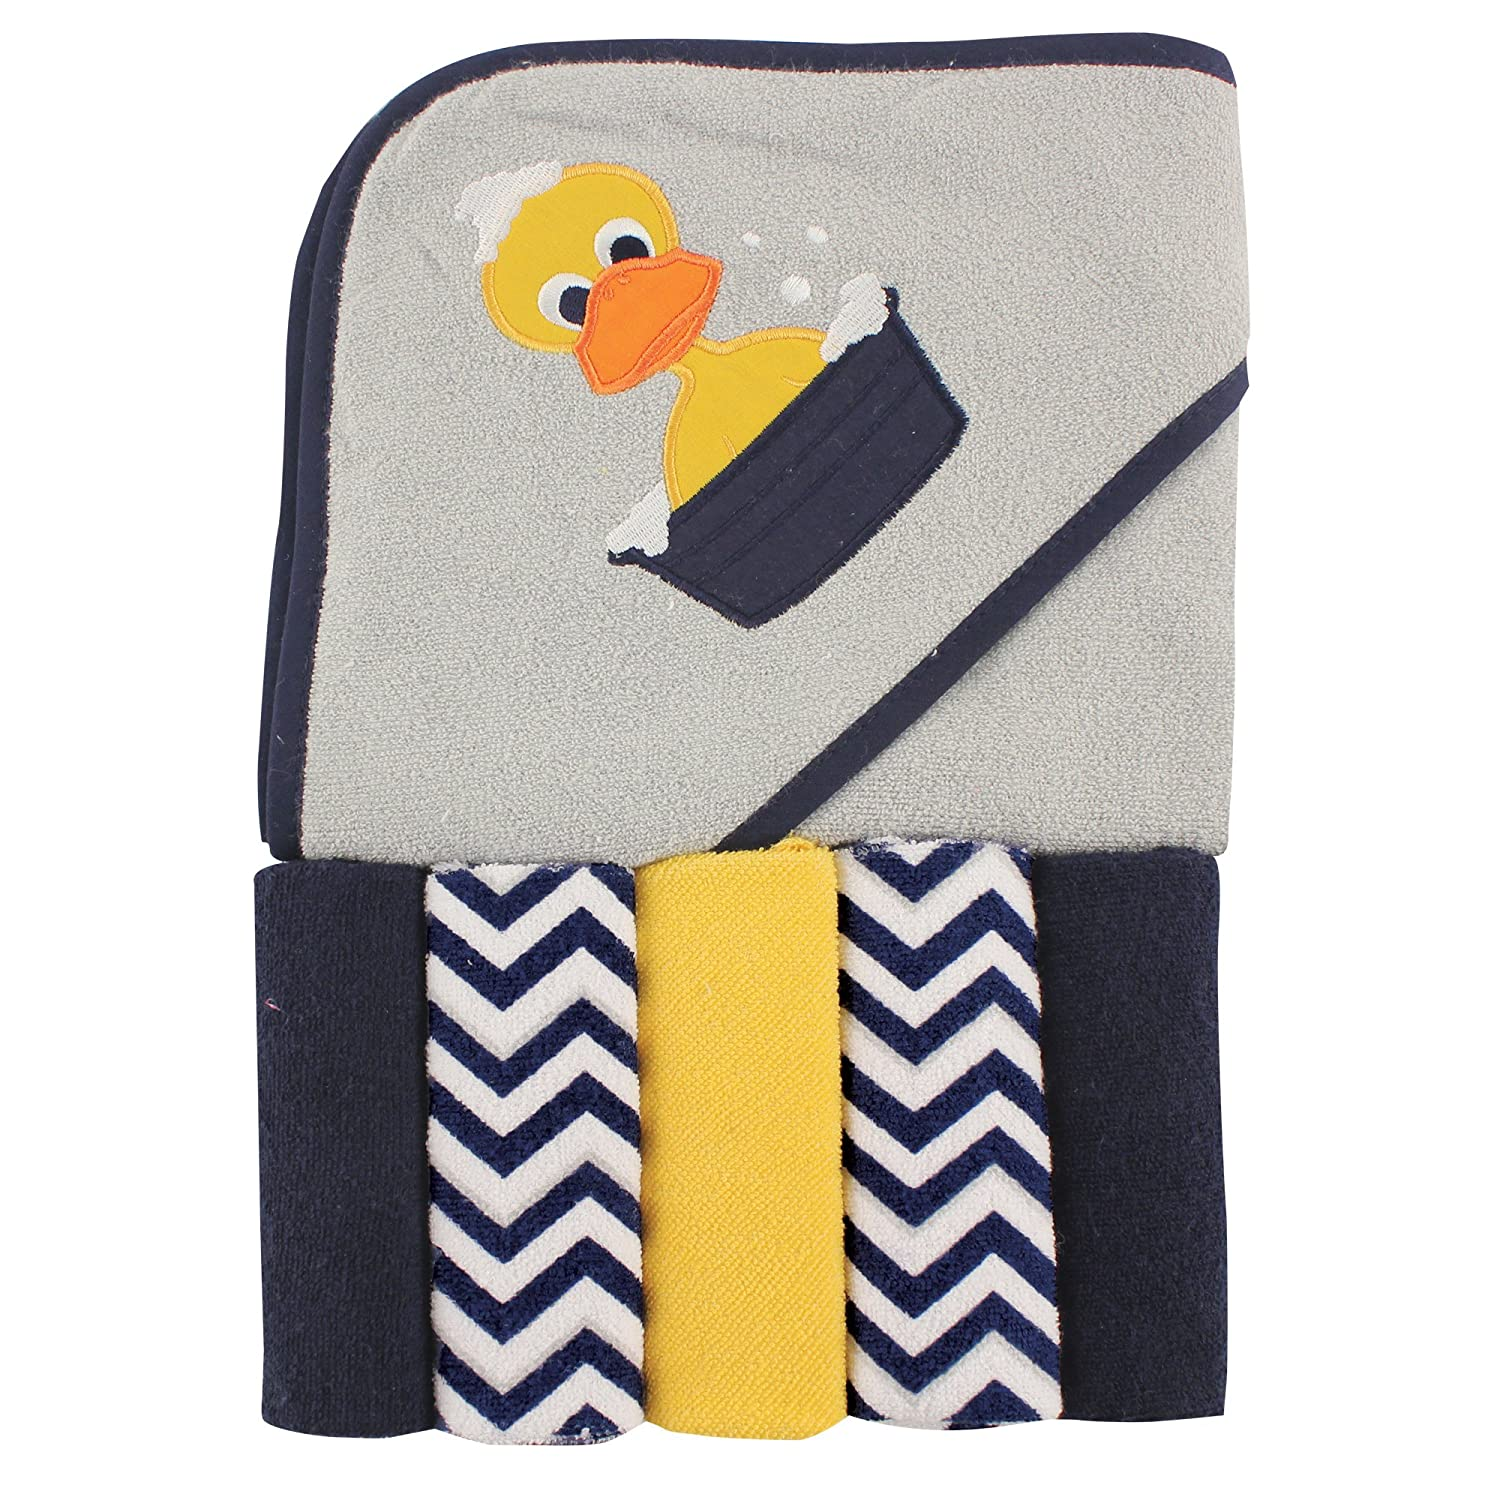 Luvable Friends Hooded Towel and 5 Washcloths, Duck by Luvable Friends   B00X21NHZY